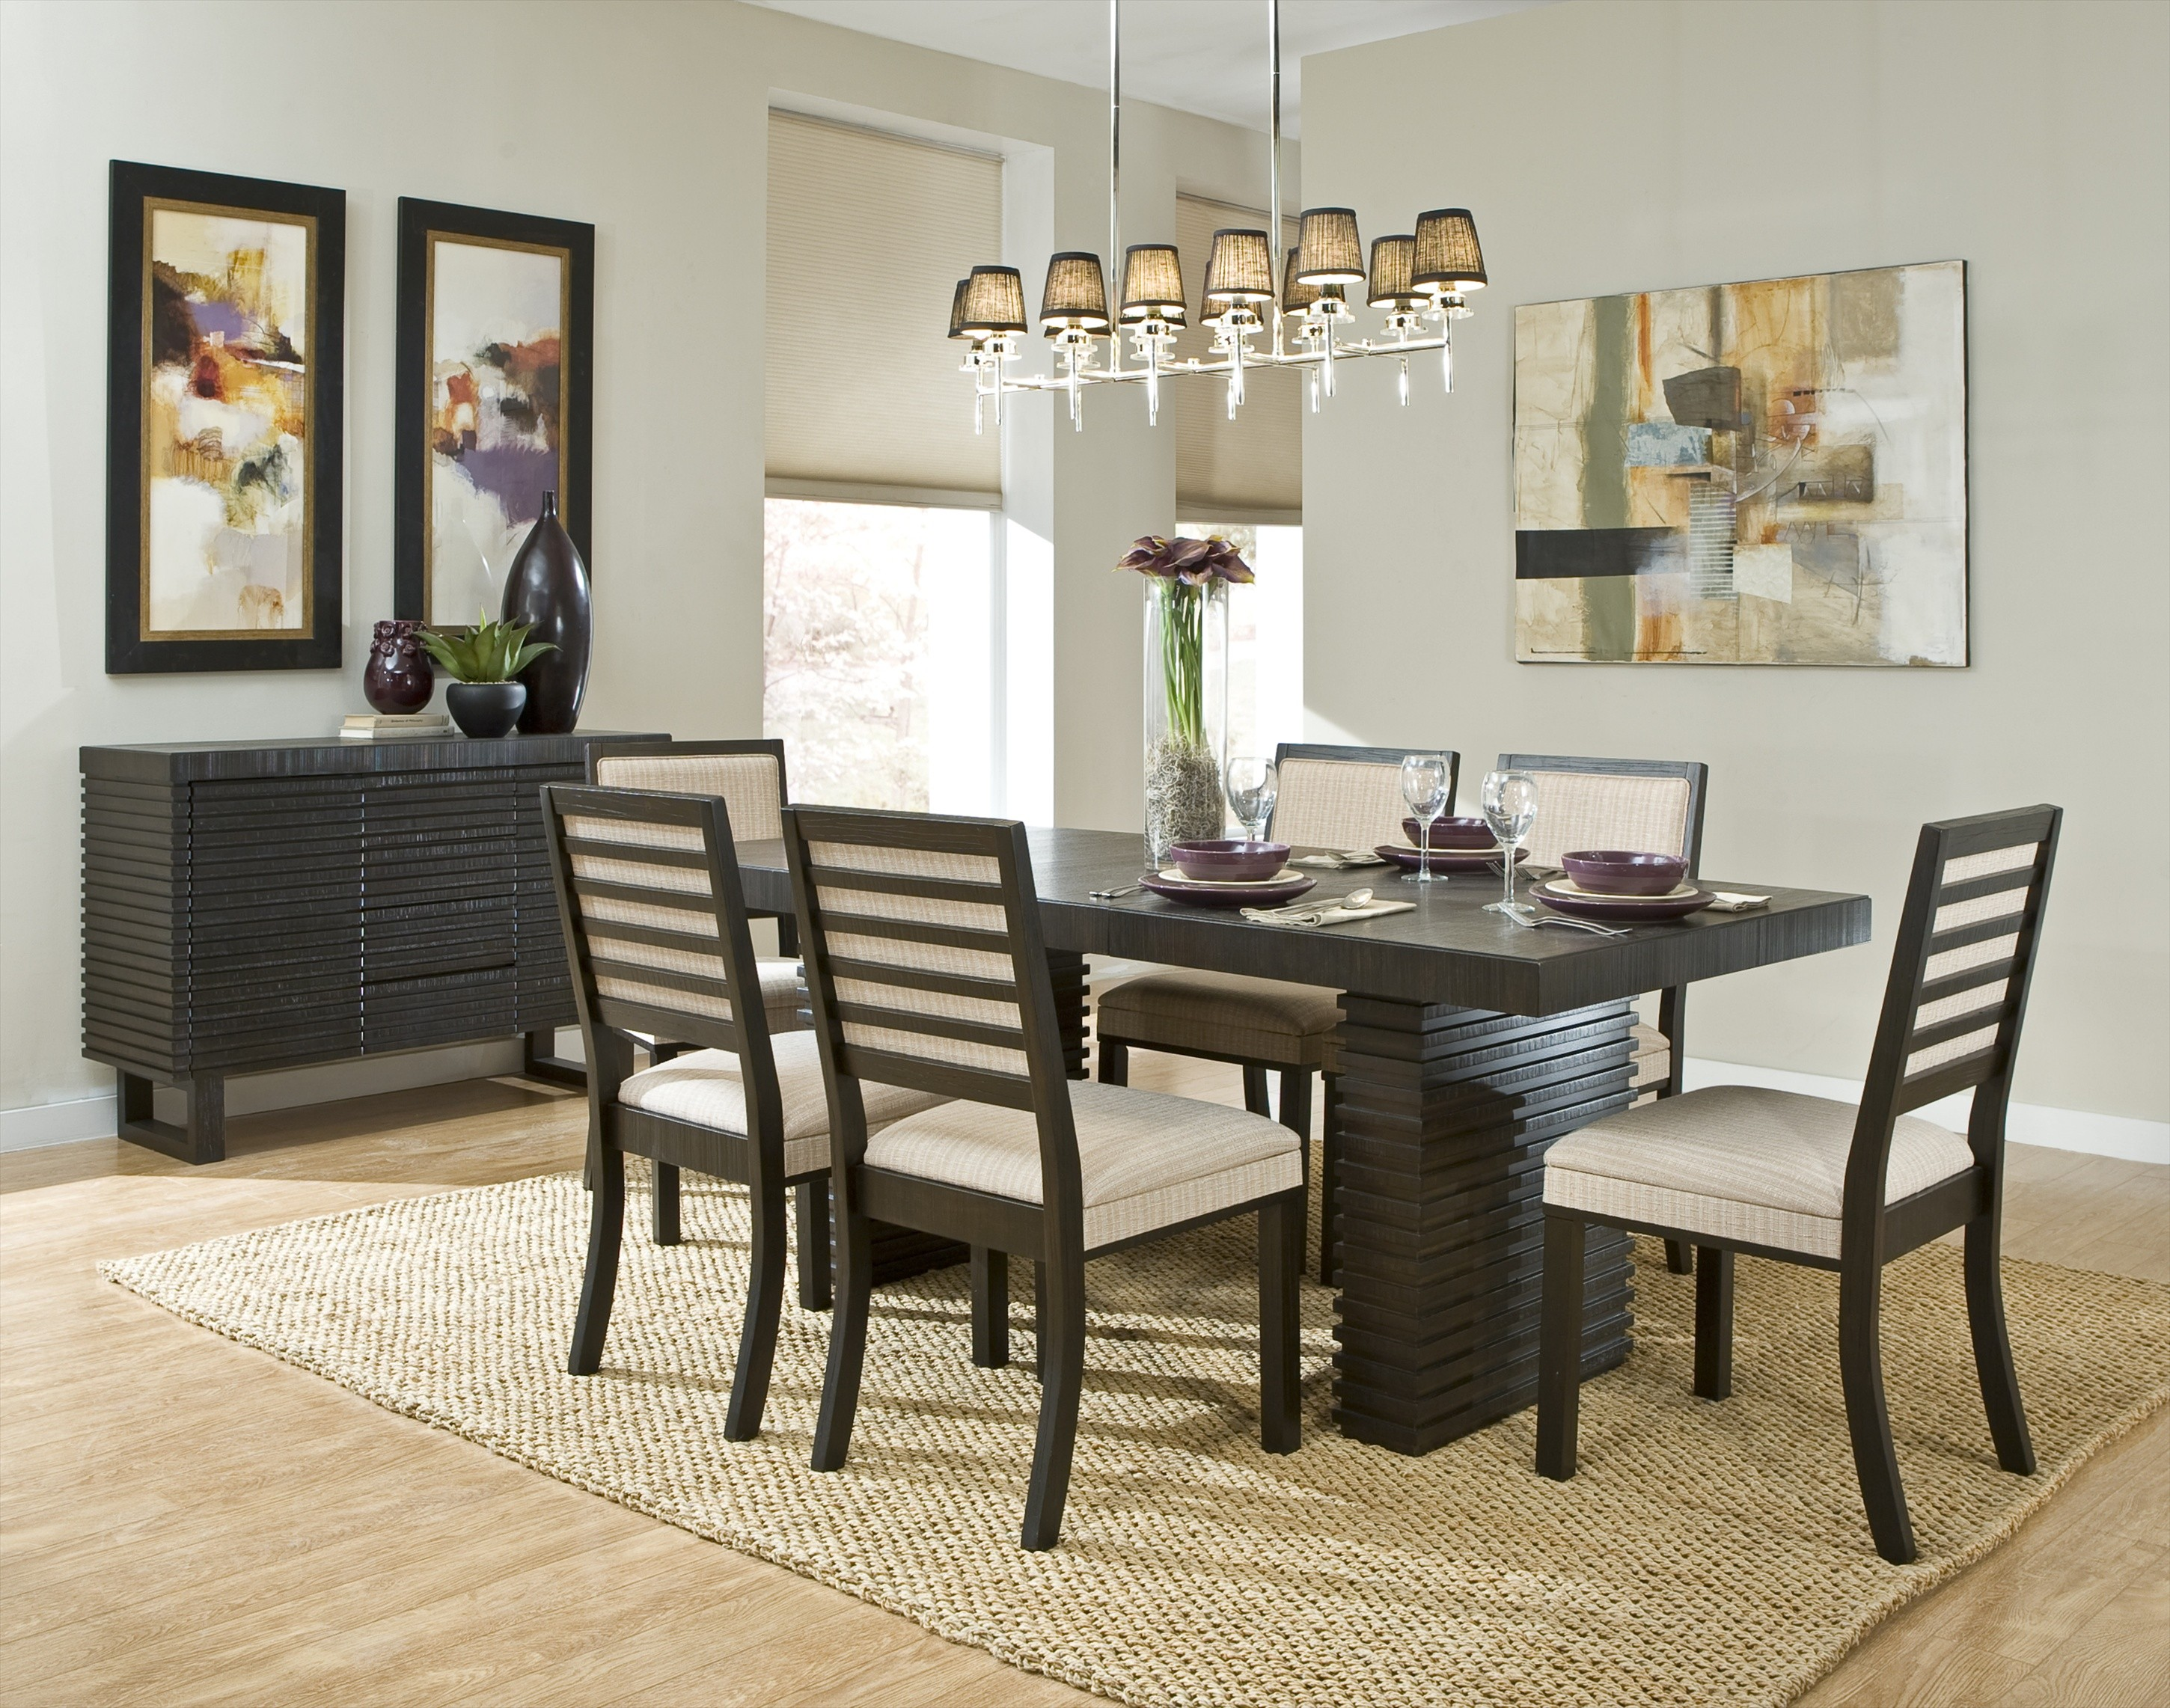 Stunning summer formal dining room homesfeed for Dining space